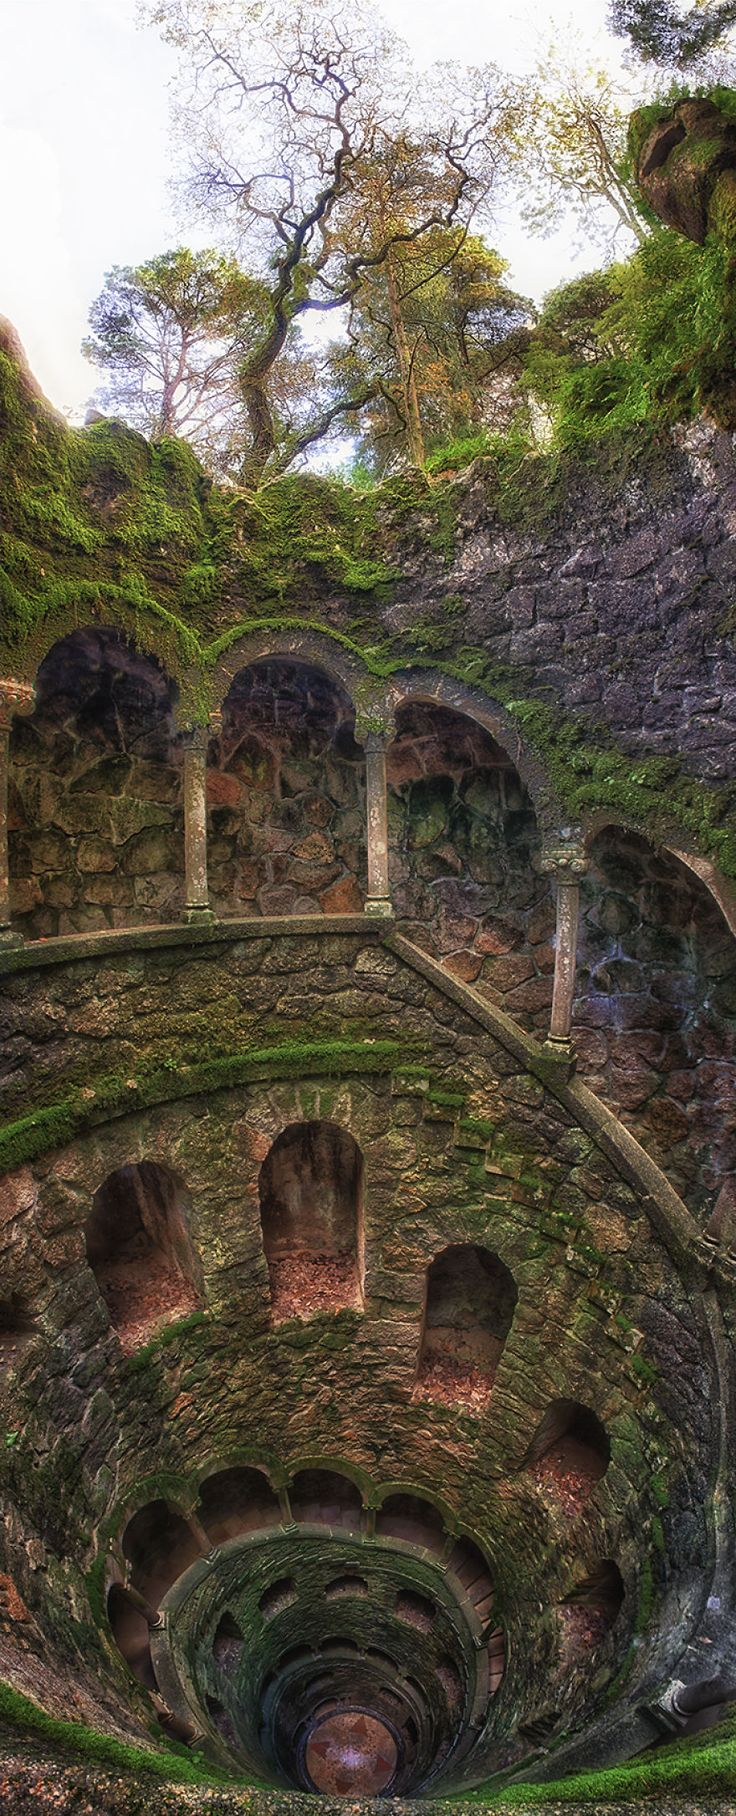 The Palace Of Mystery: Pictures Of Quinta Da Regaleira, Sintra, Portugal